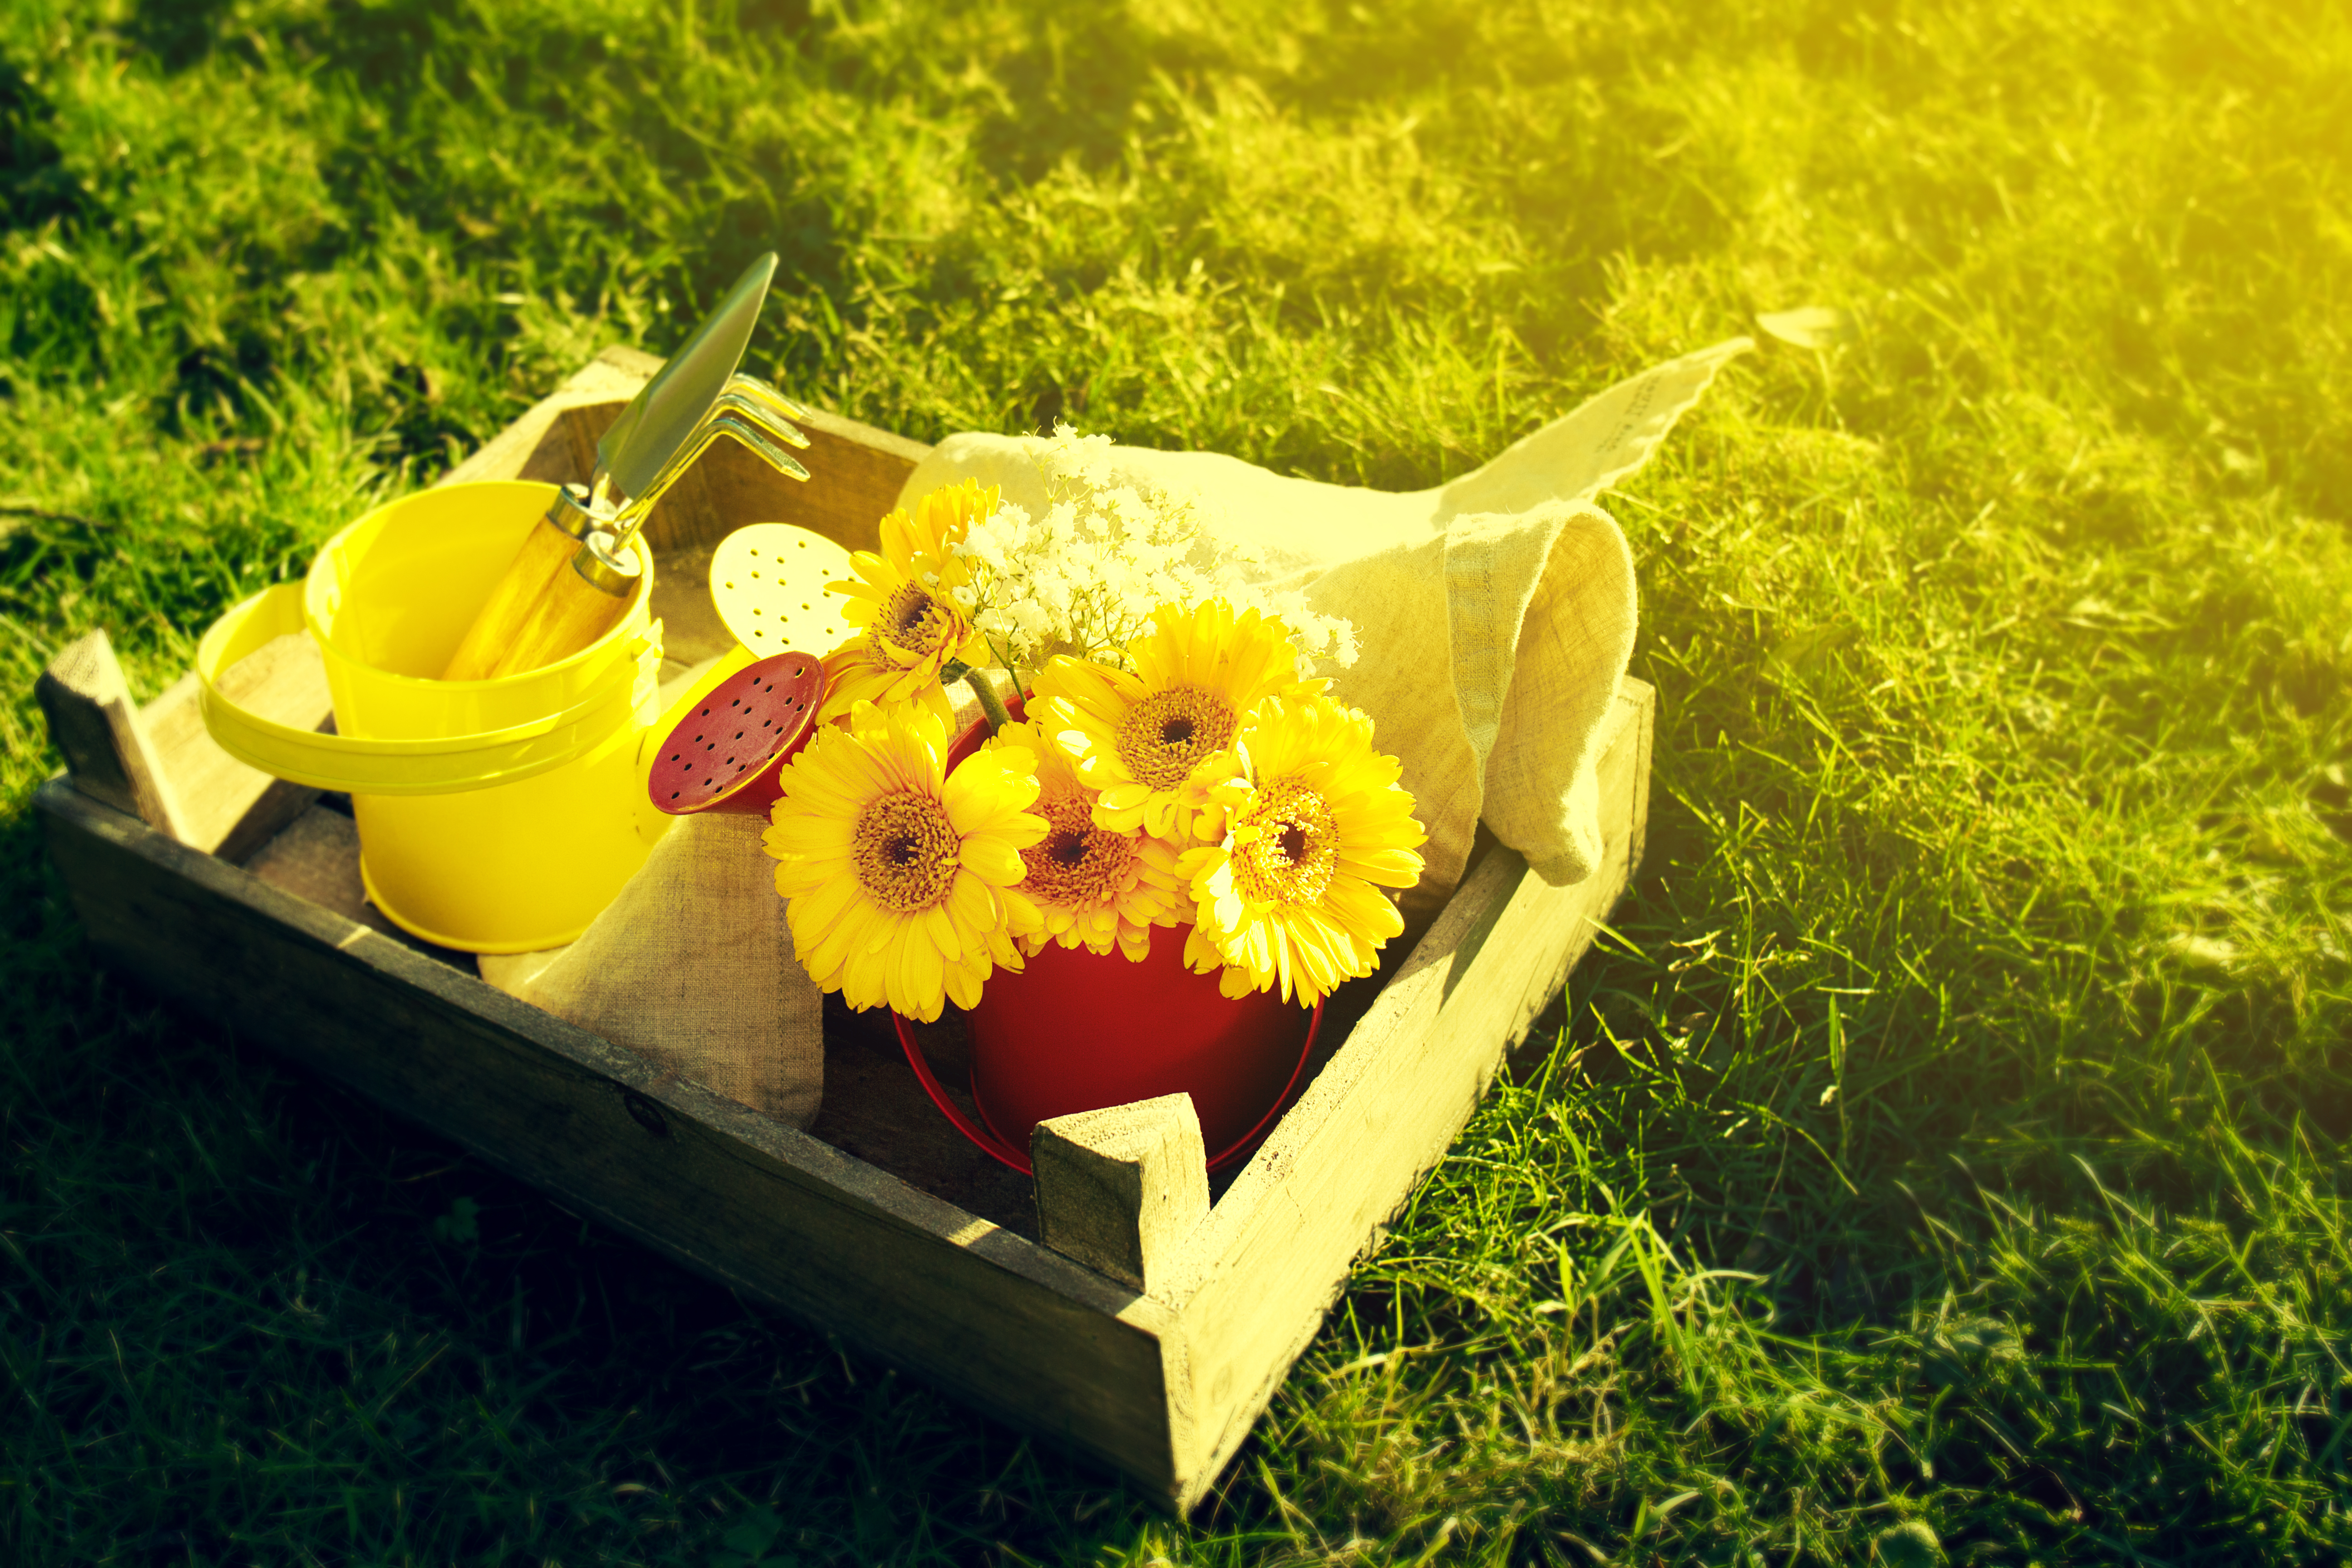 Spring or Summer Concept. Bouquet Flowers with Gardening Tools on Grass with Beautiful Sunny Light. Daylight. Horizontal with Copy Space.